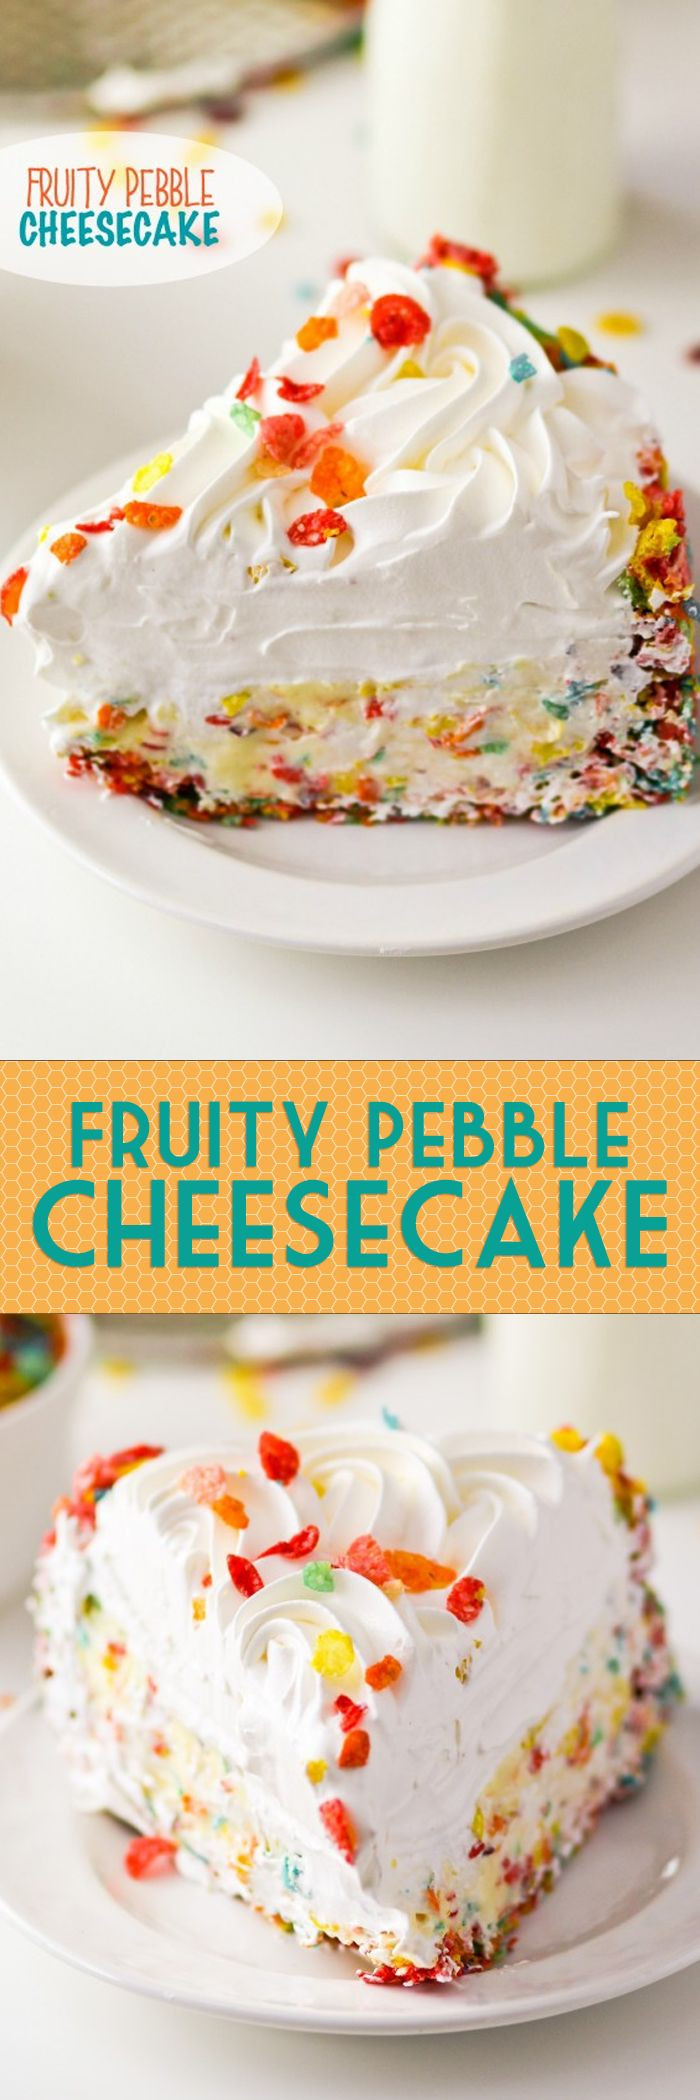 Fruity Pebbles Desserts  25 Best Ideas about Cereal Recipes on Pinterest